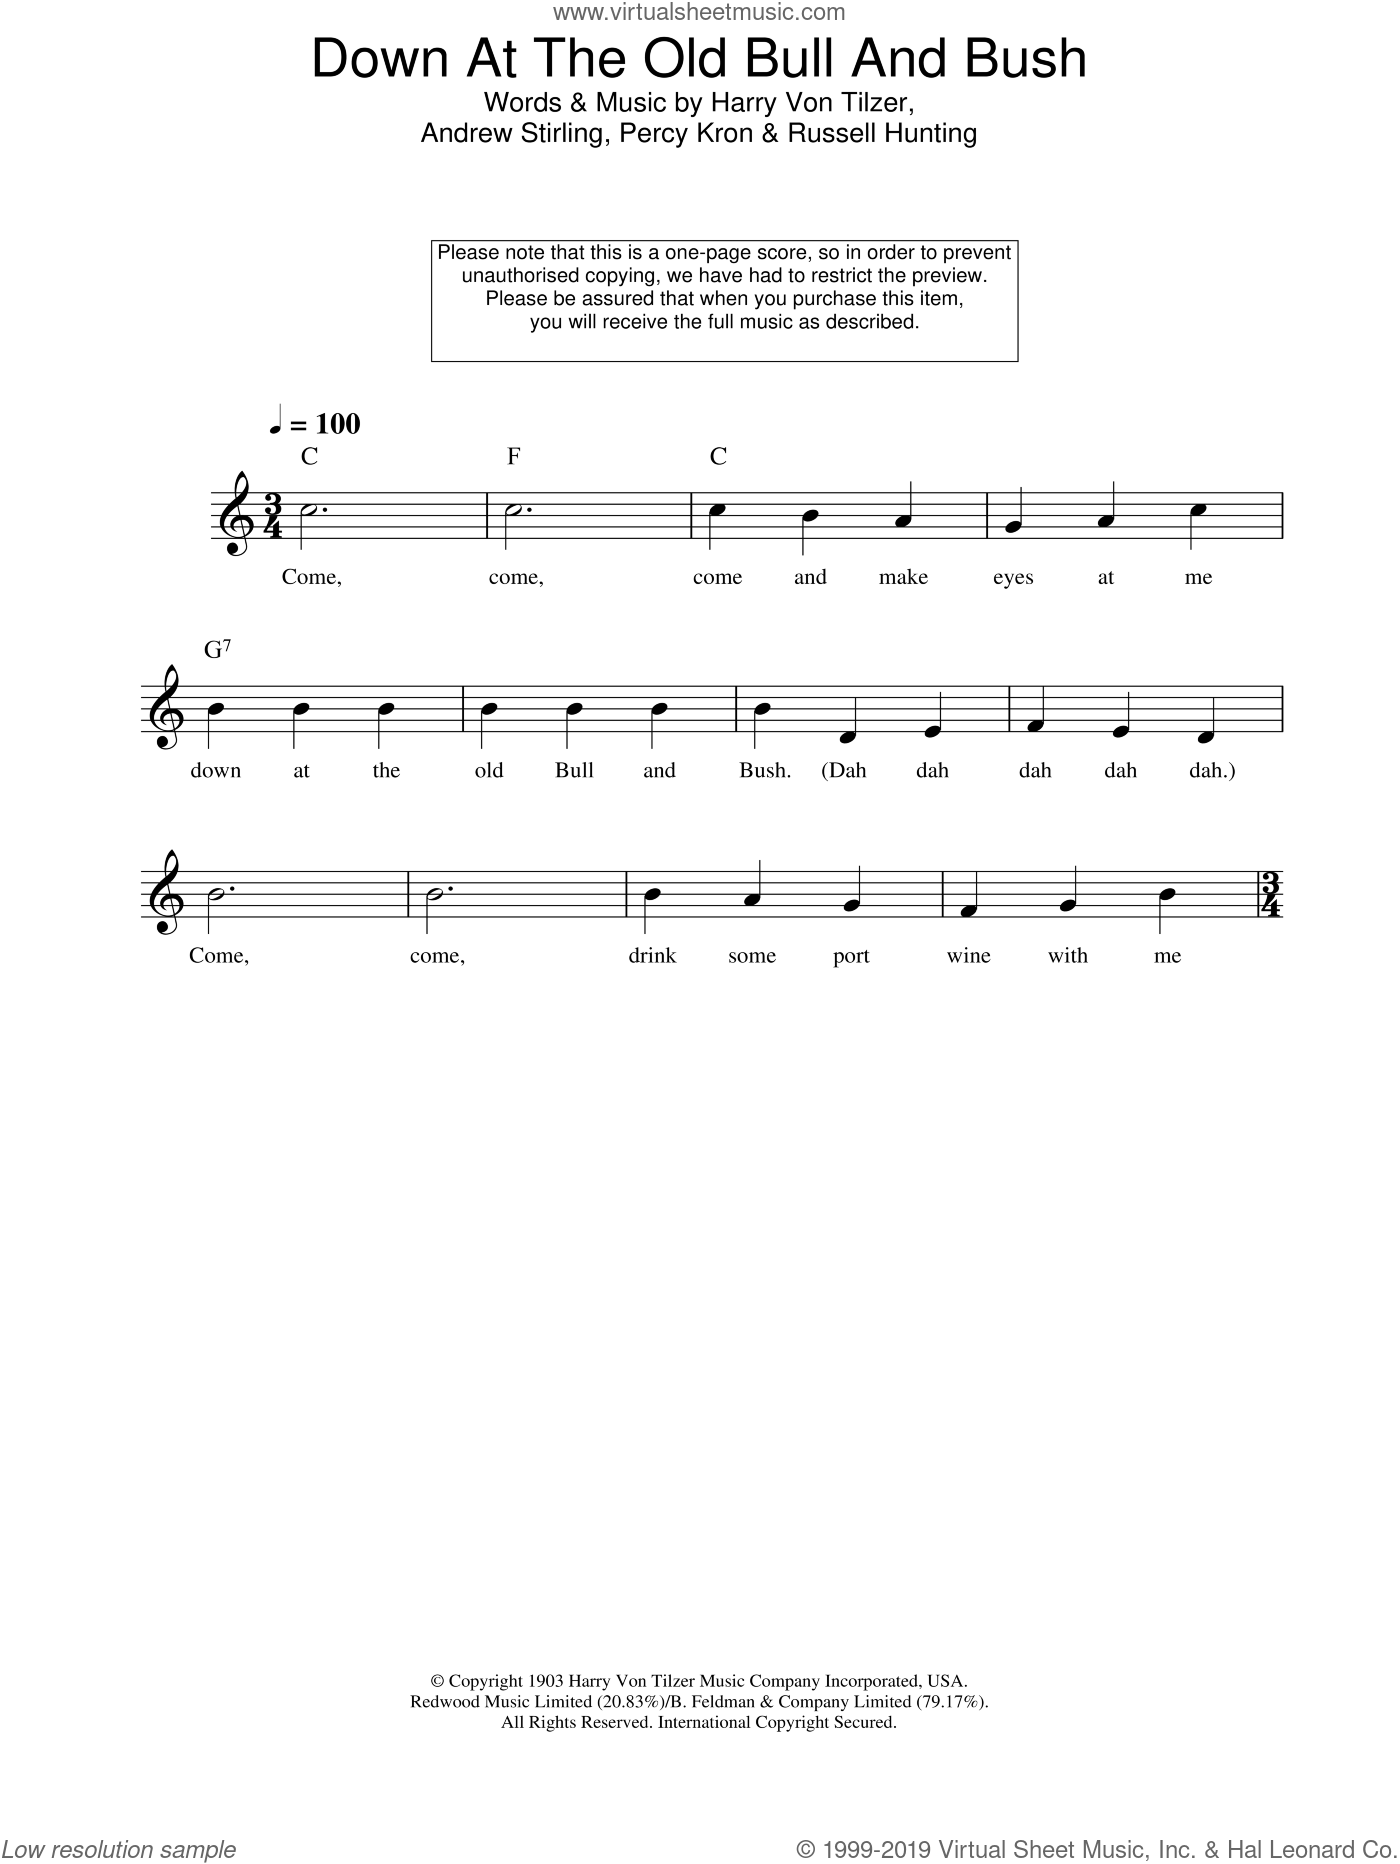 Down At The Old Bull And Bush sheet music for voice and other instruments (fake book) by Harry Von Tilzer, Andrew Stirling, Percy Kron and Russell Hunting, intermediate skill level